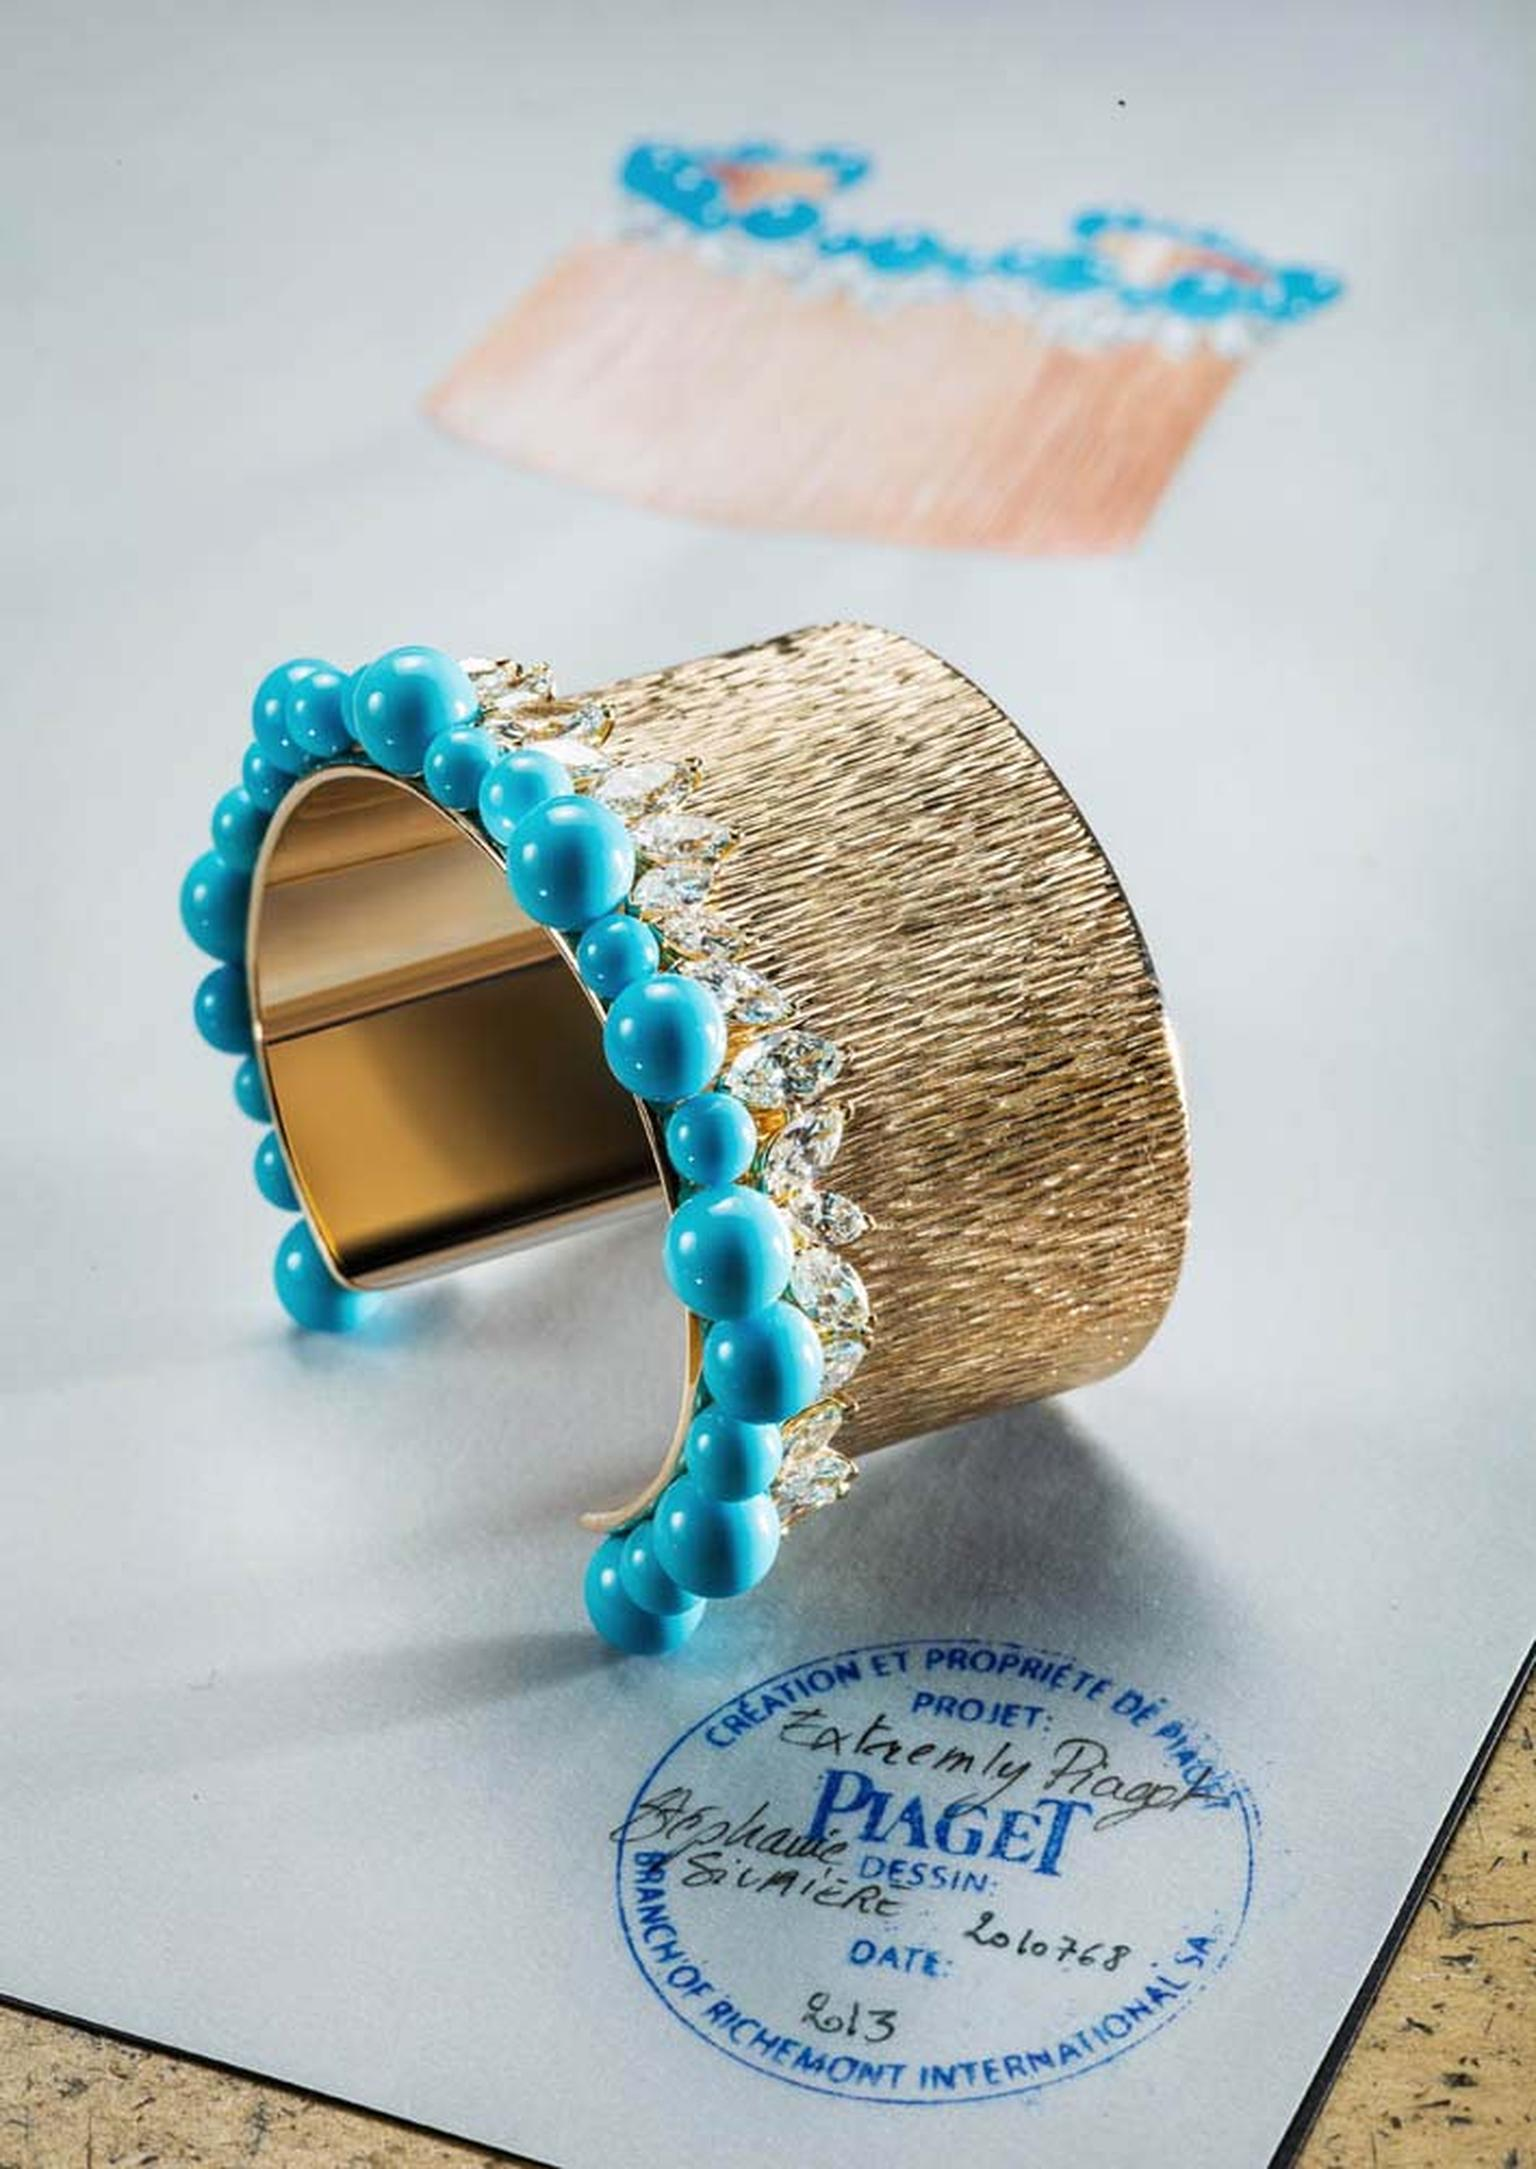 Extremely Piaget collection Palace bracelet in pink gold set with 32 marquise-cut diamonds and 23 turquoise beads.